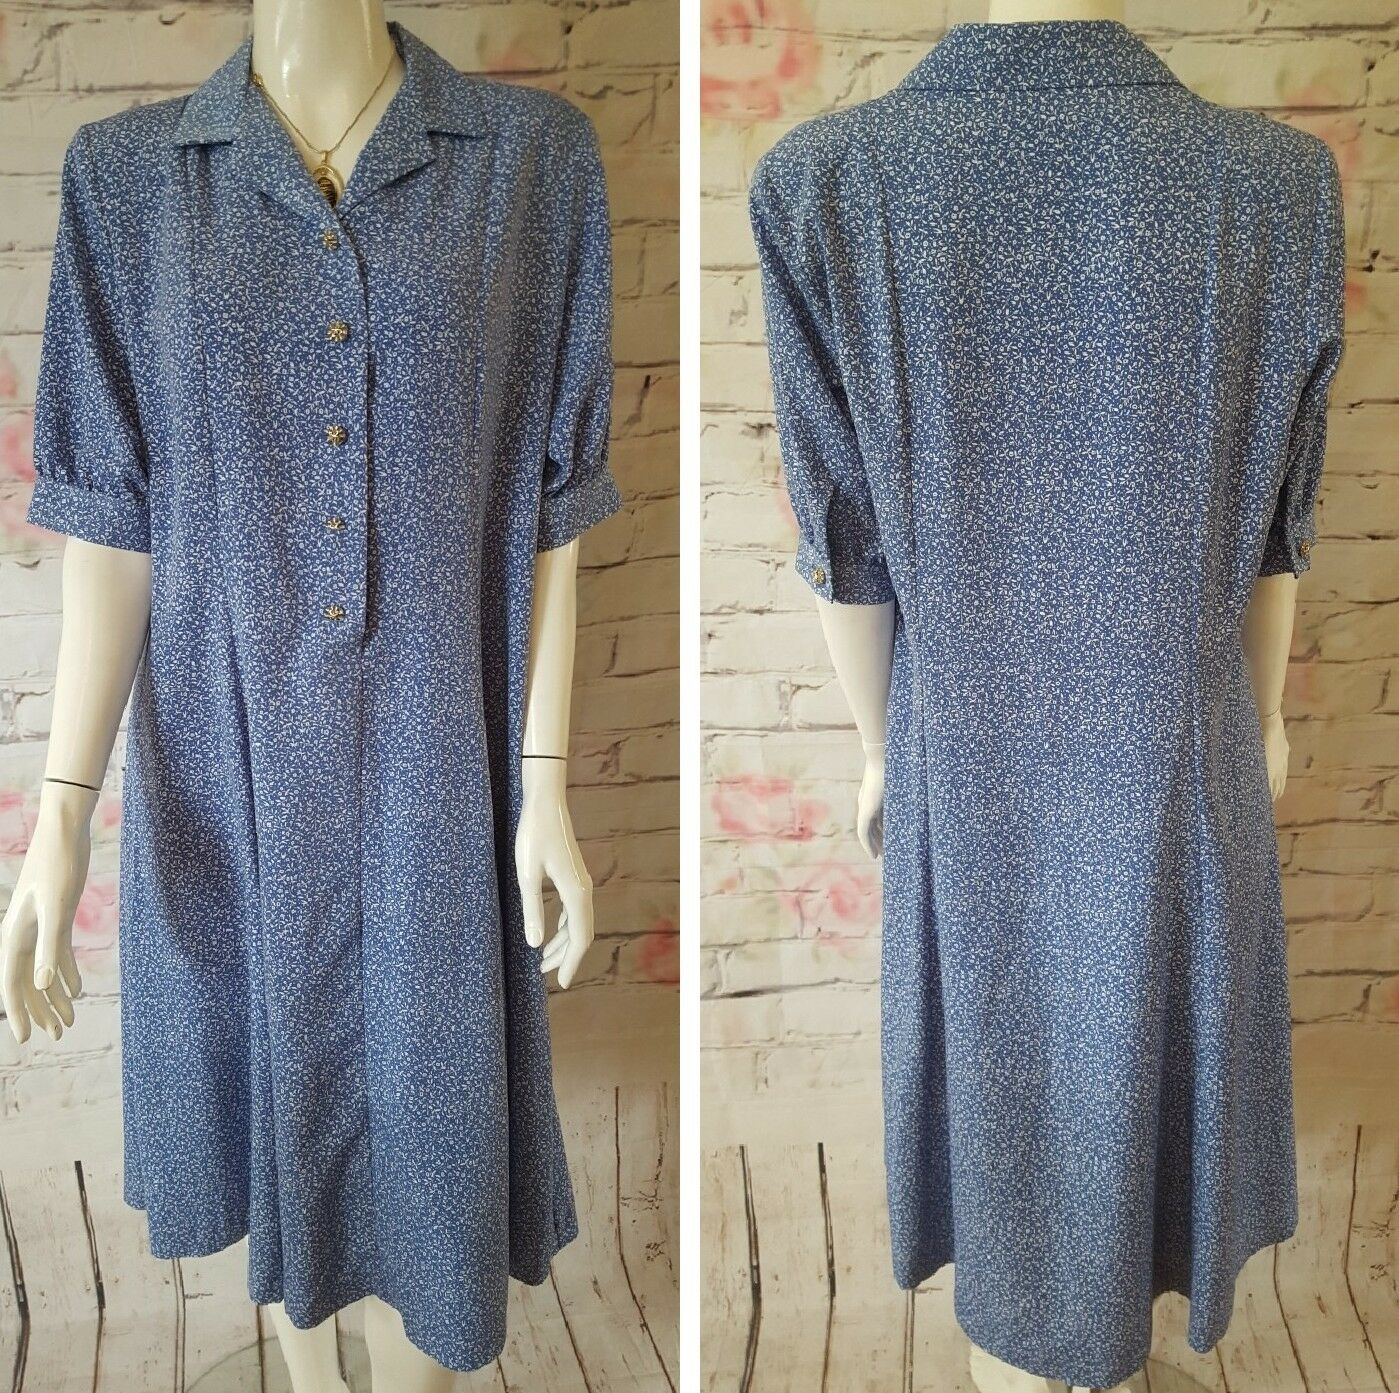 COUNTY JERSEY,BEAUTIFUL LADIES,FLORAL DRESS,SIZE 16,FASTENING BUTTONS,BARELY USE